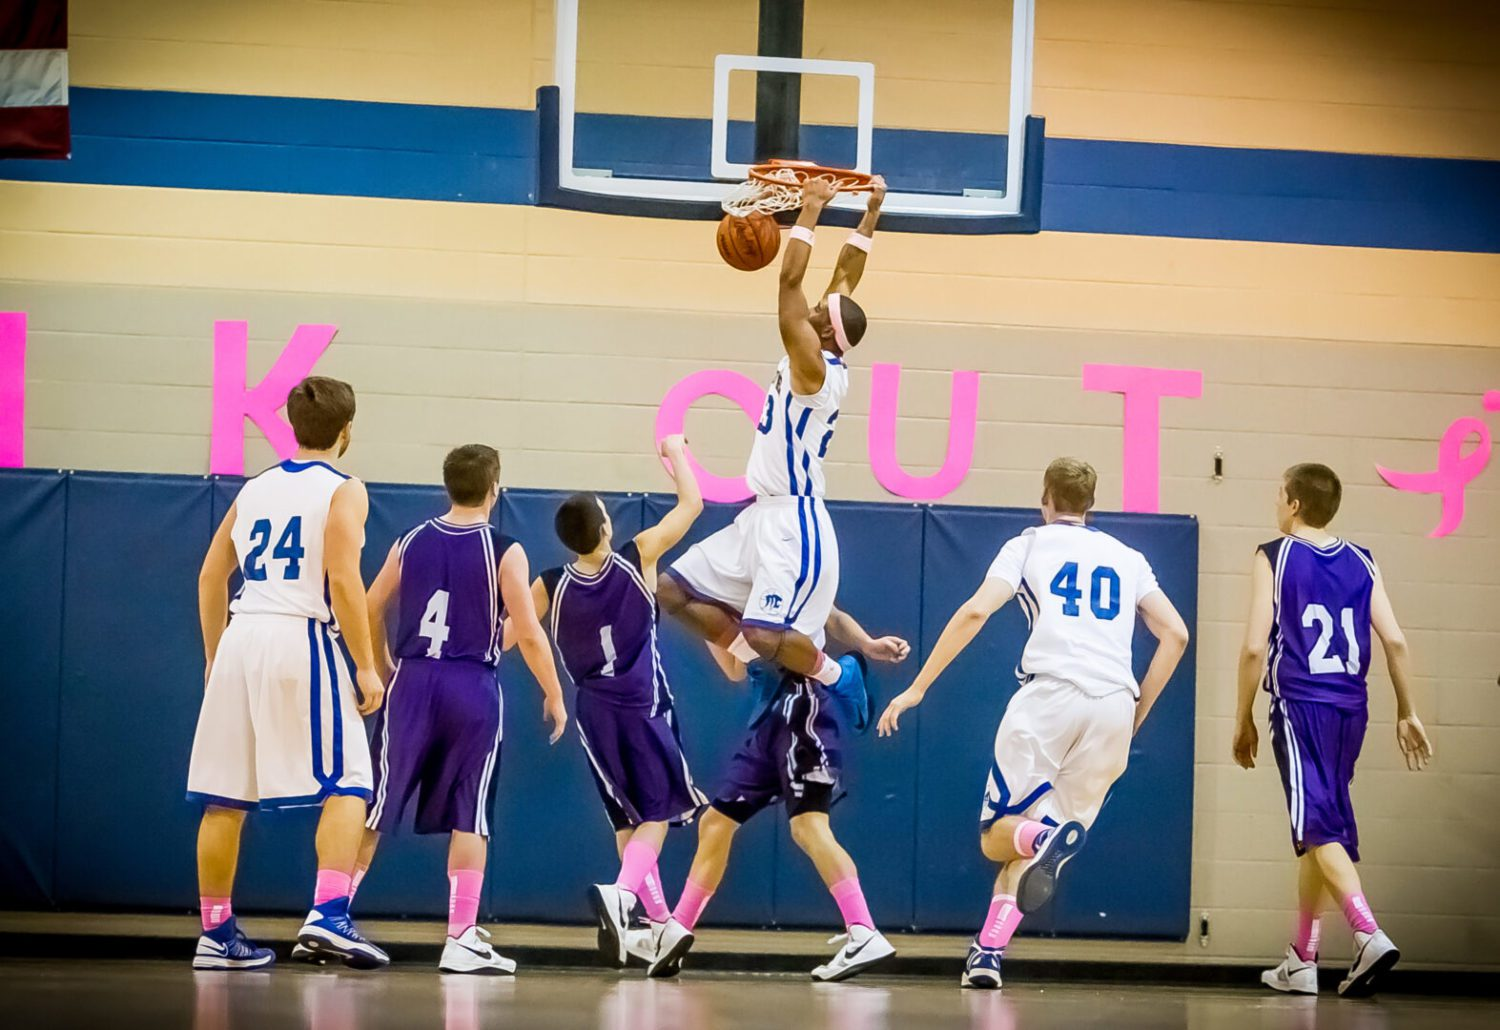 Boys basketball: Shelby at Montague (Photo gallery)